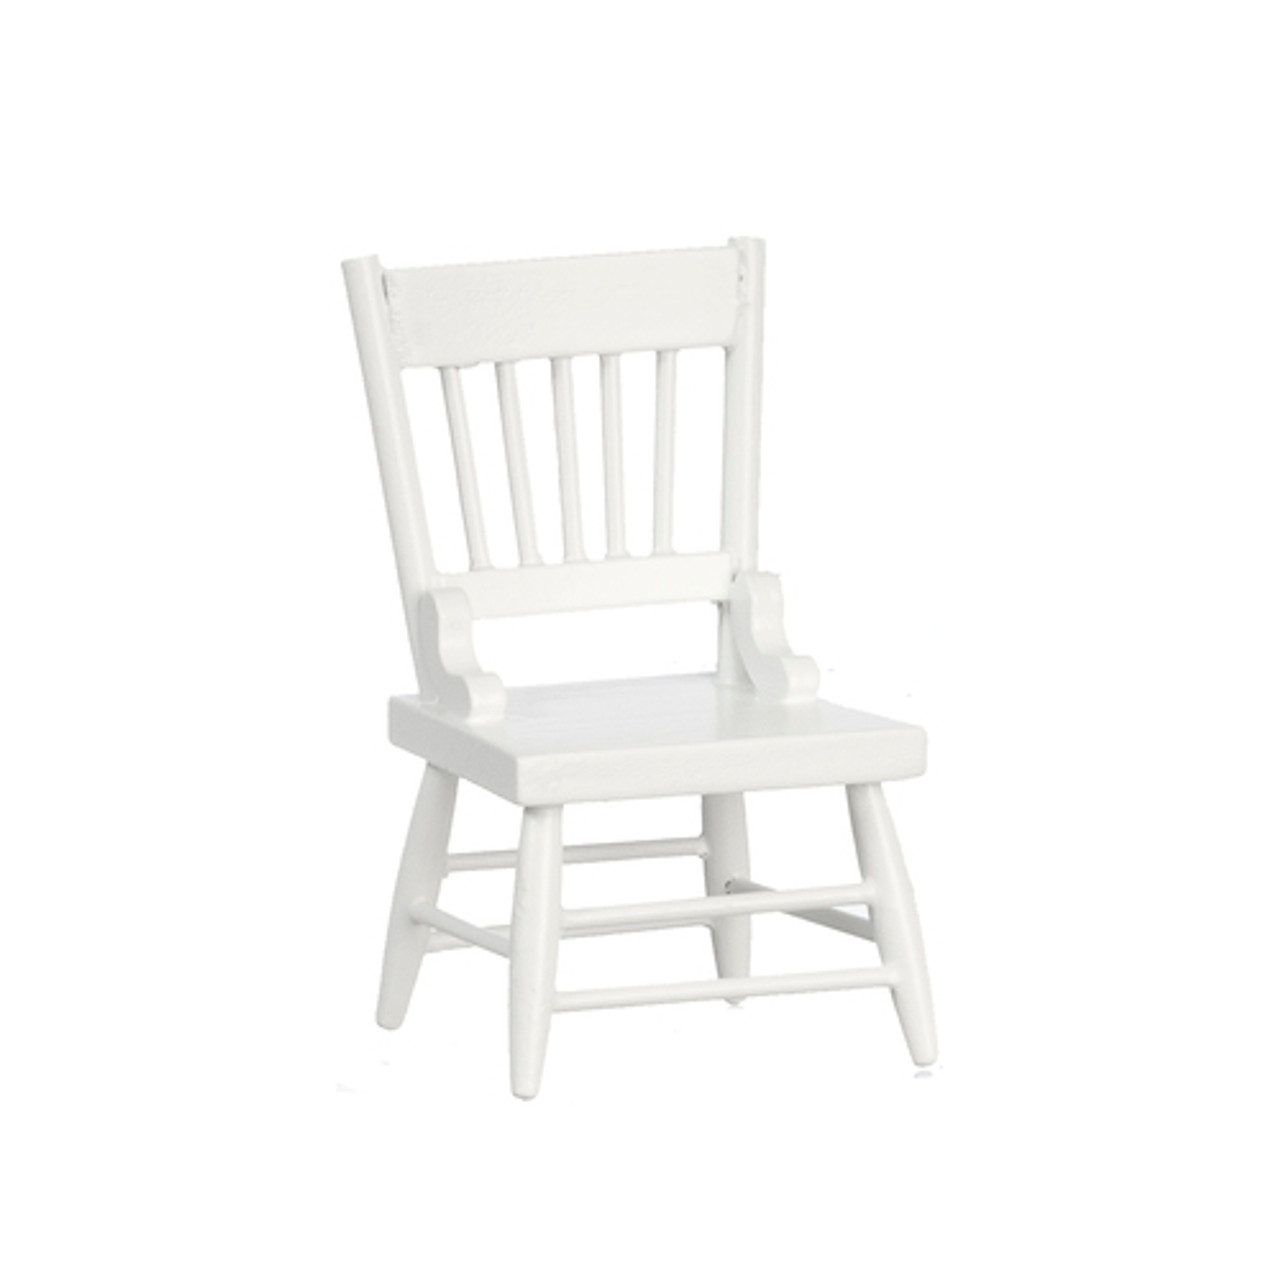 Chair - White